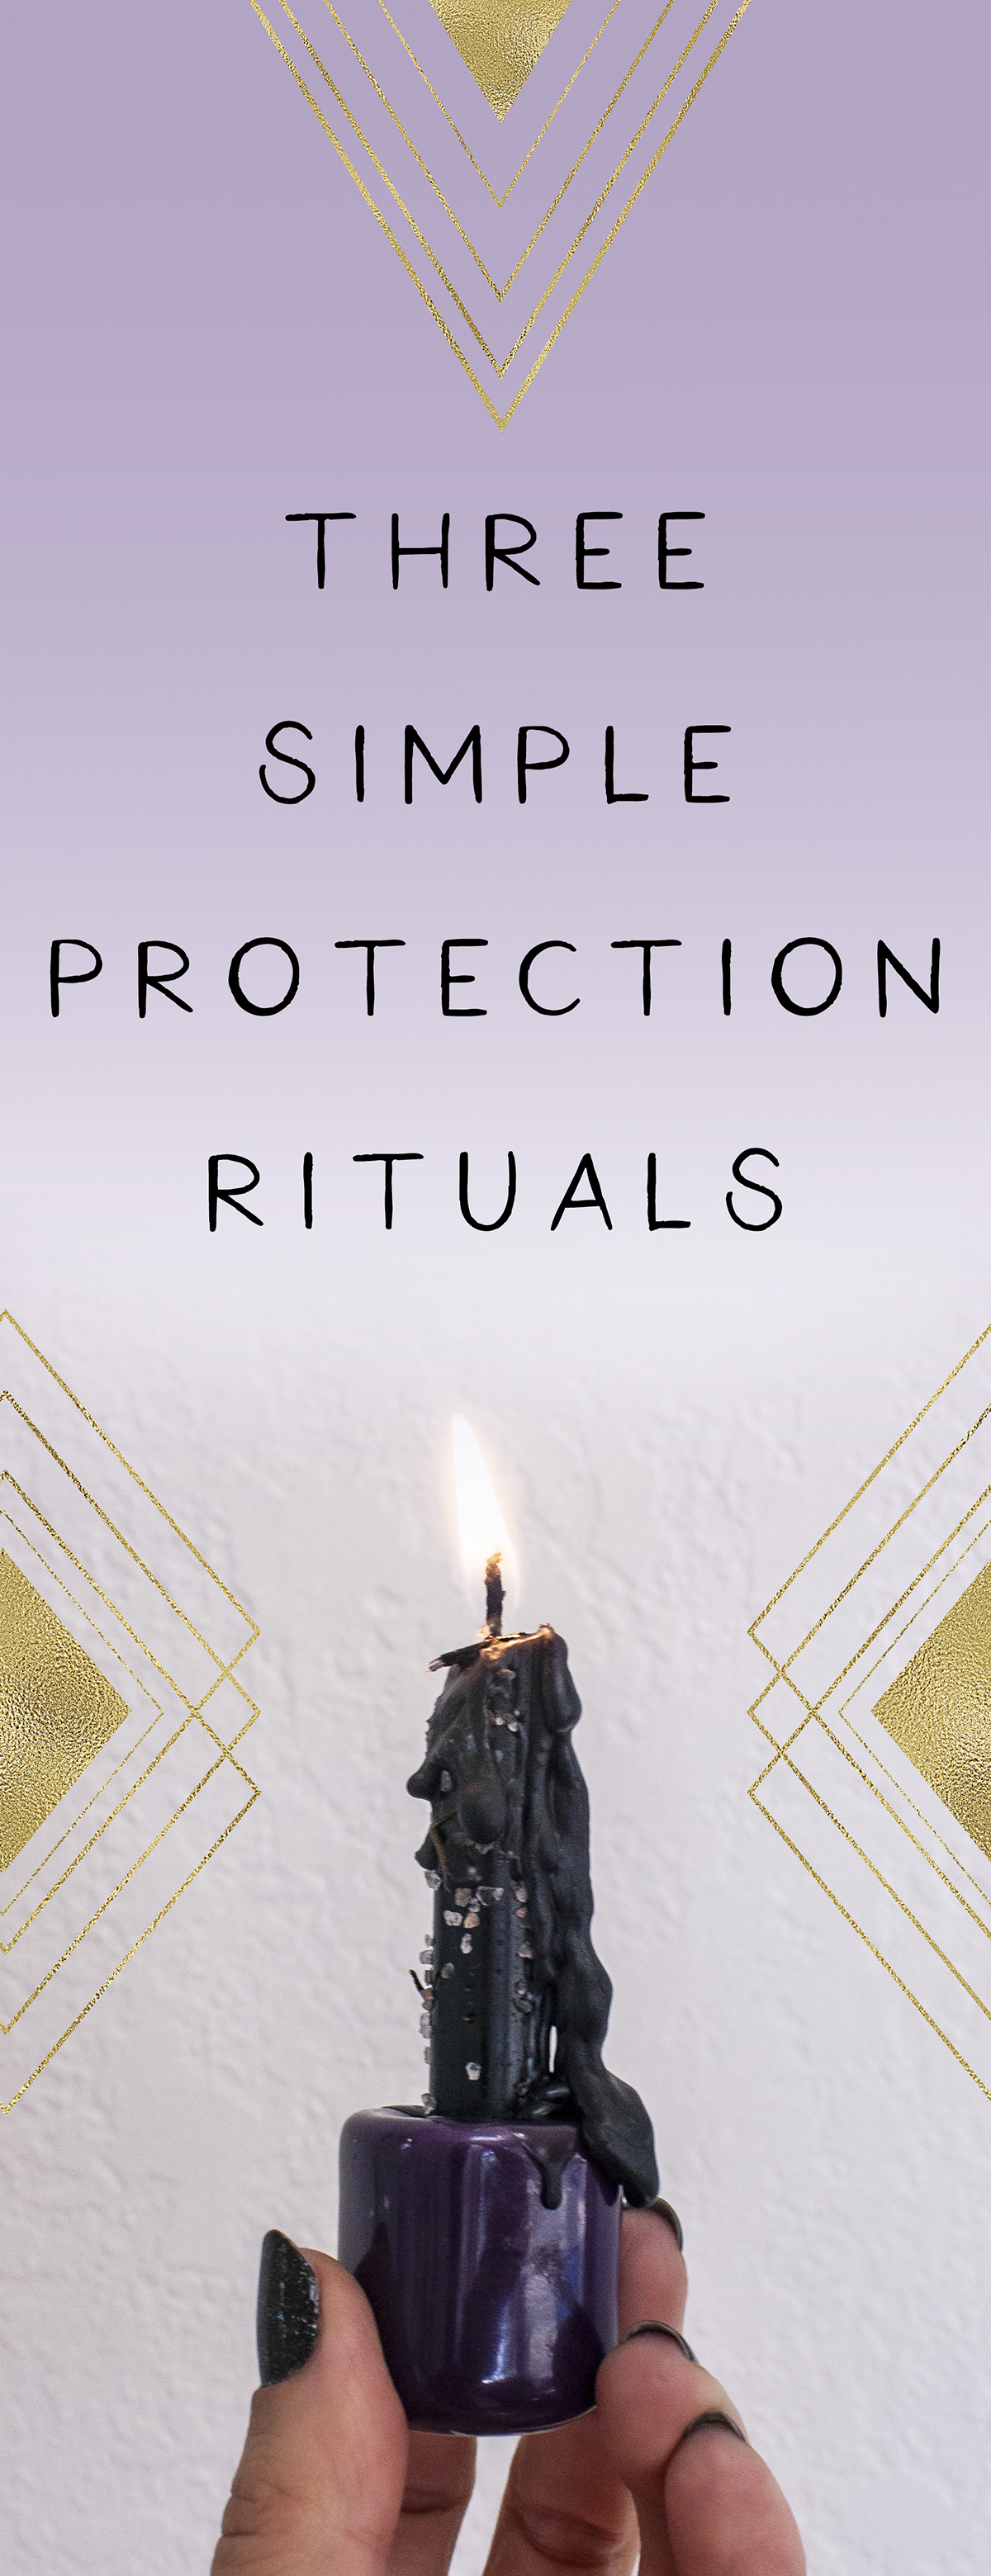 Pic2-protection-rituals-simple-protection-spells